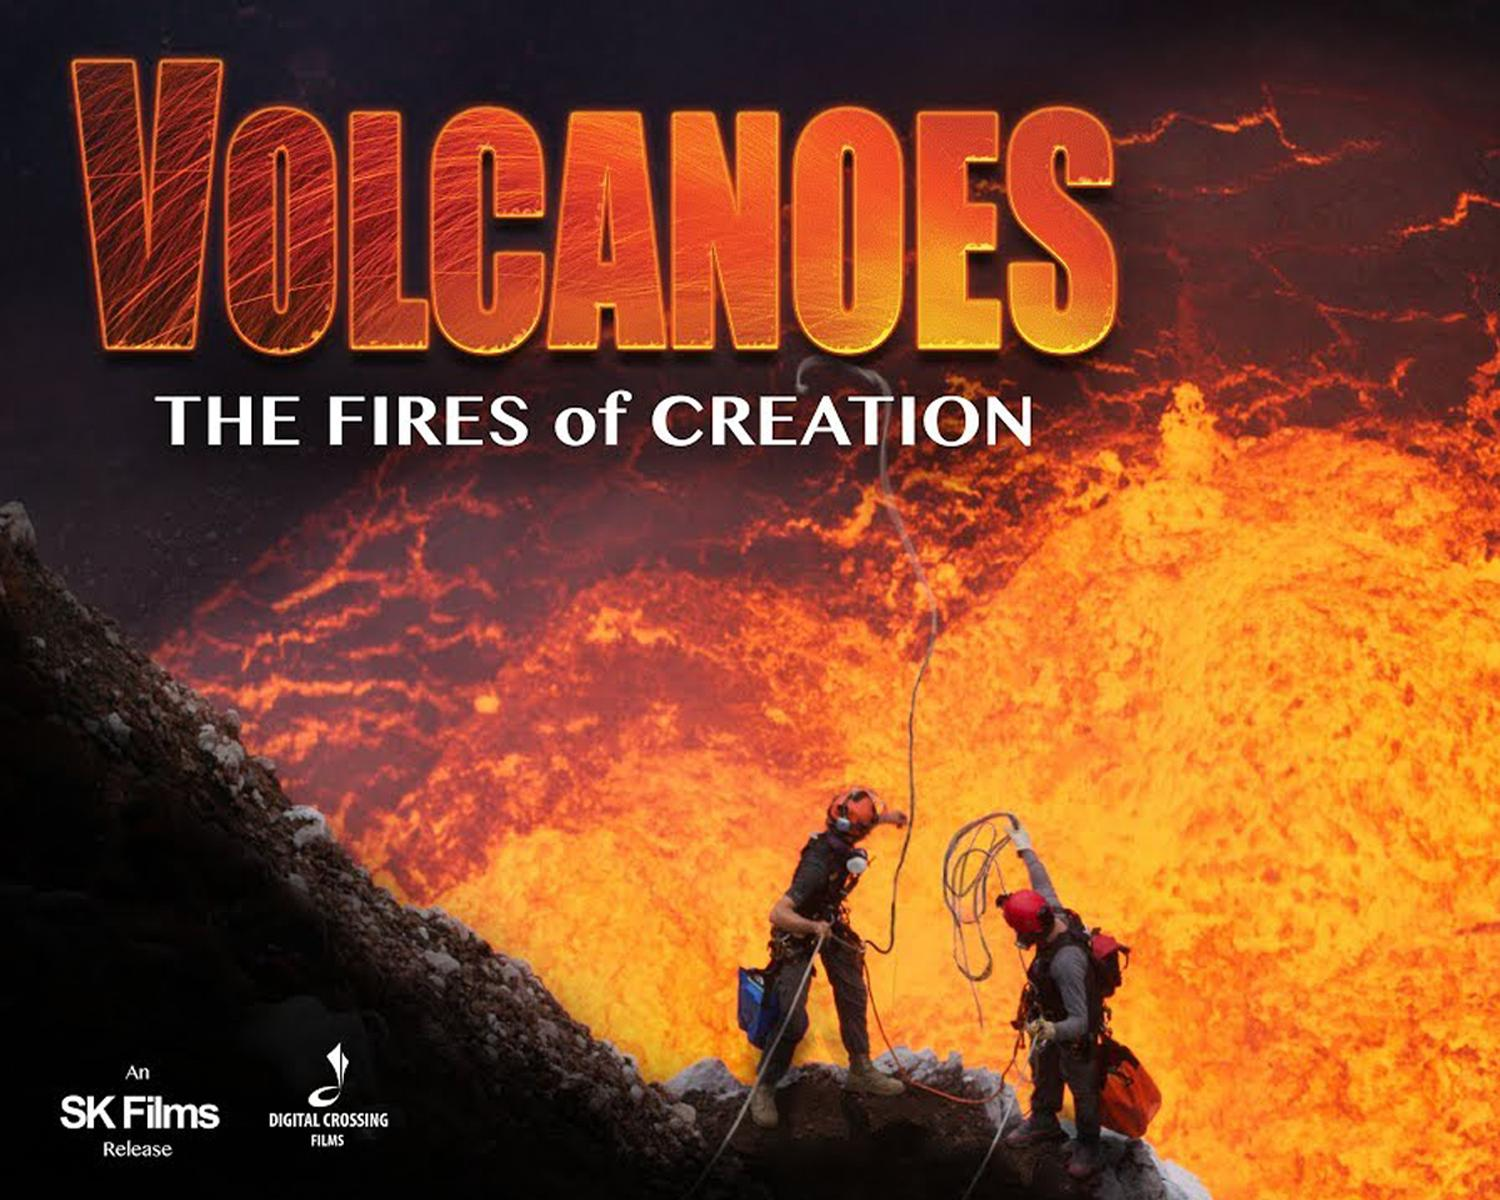 Volcanoes 3D takes guests on a thrilling adventure with explorer Carsten Peter